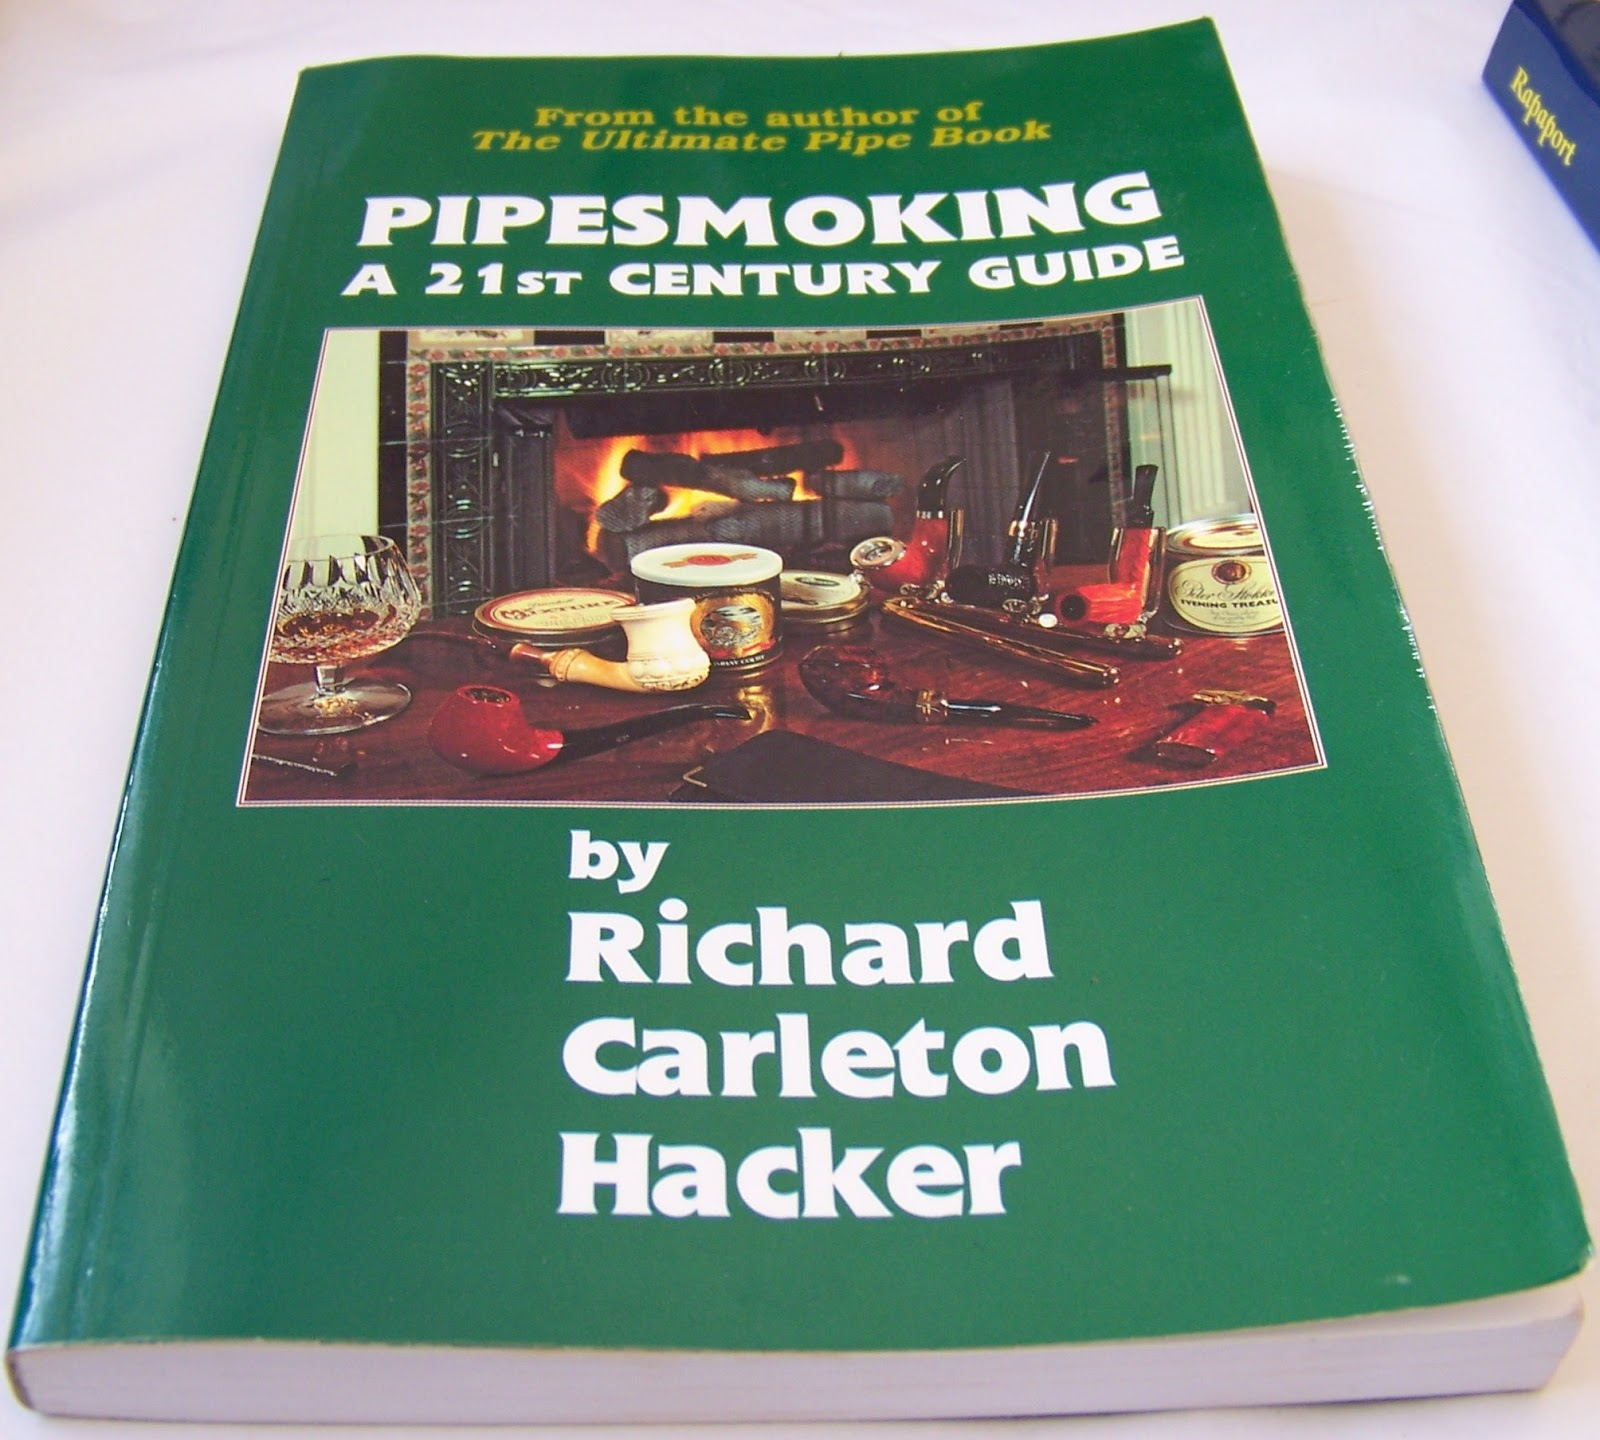 Pipesmoking: A 21st Century Guide Richard Carleton Hacker